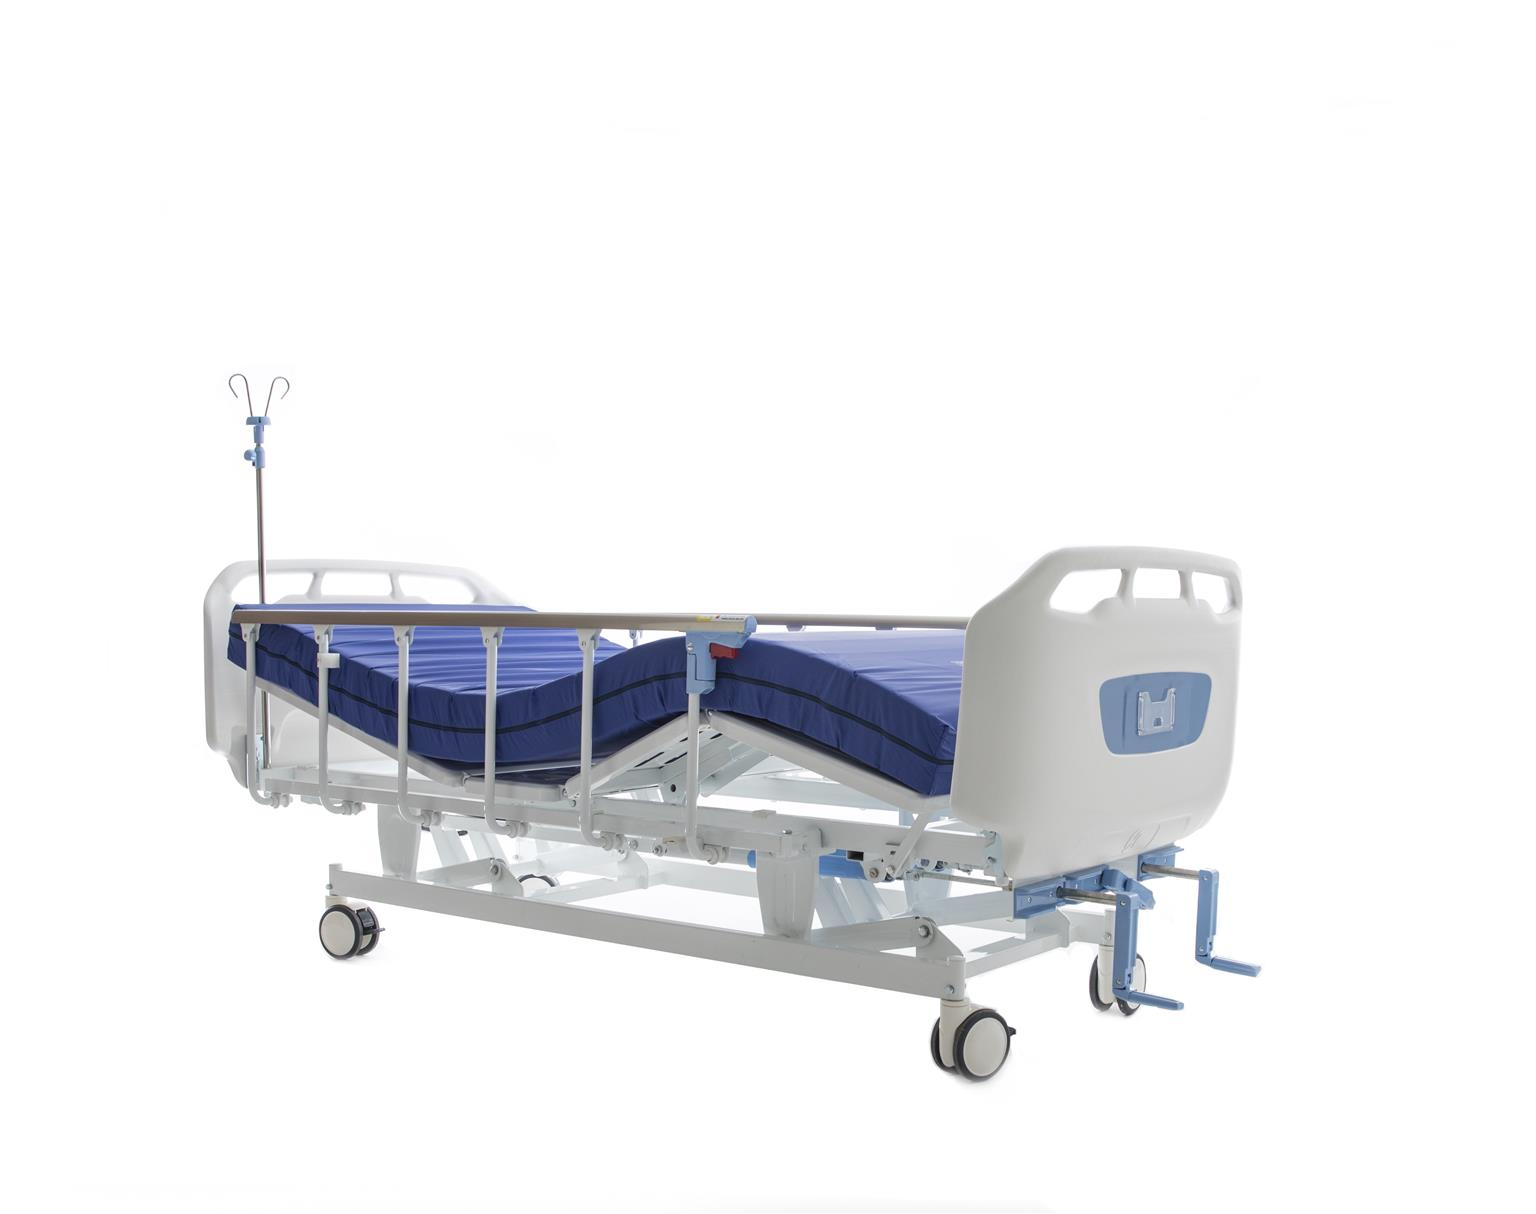 3 Crank Hospital Bed - On Sale, FREE DELIVERY. While Stocks Last.